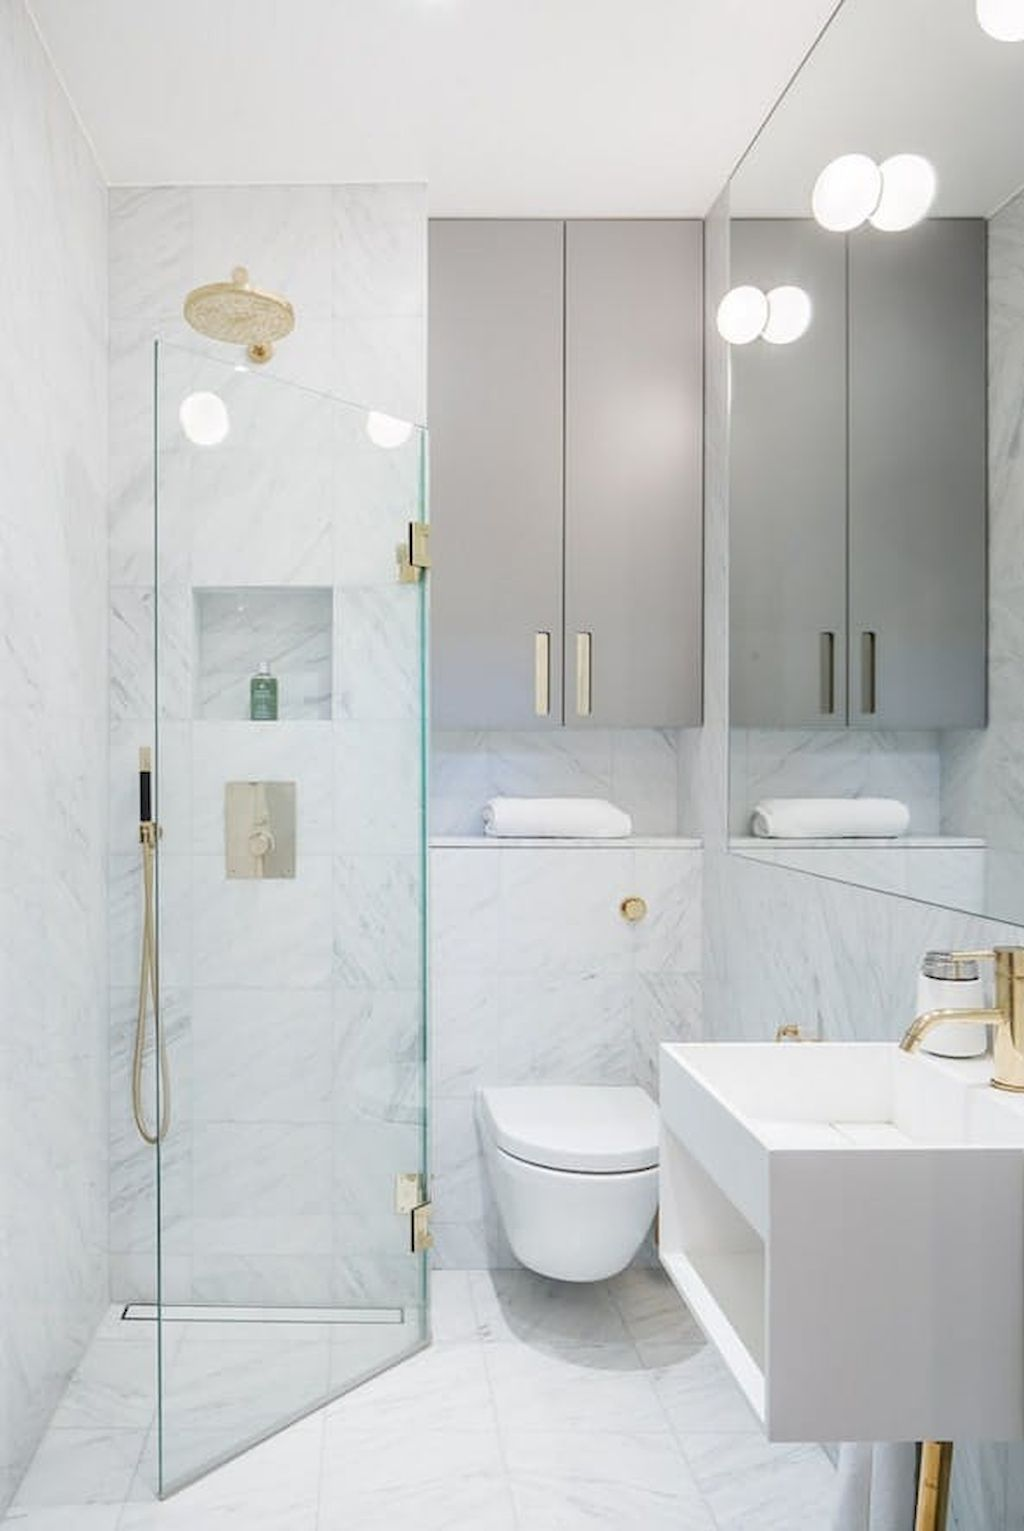 Best small bathroom remodel ideas on a budget (5 | Apartment ...